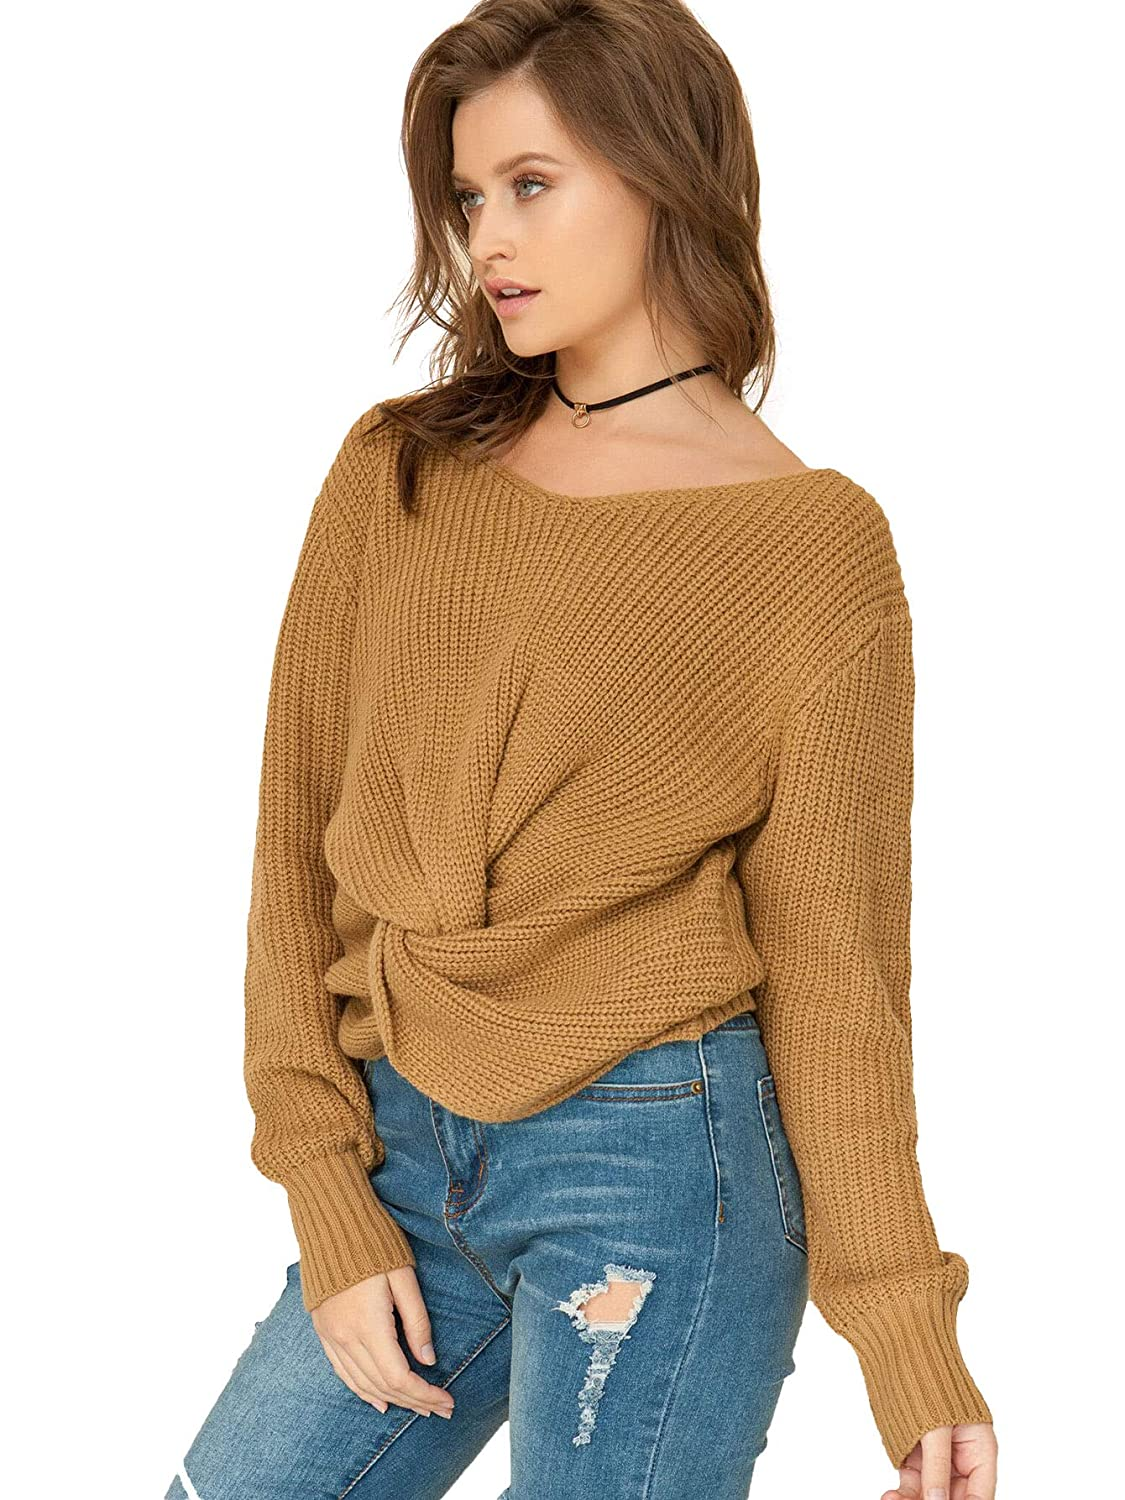 6d2c26e33956c3 Milumia Long Sleeves Criss Cross Loose Fitting Batwing Style Fall  Lightweight Sweater V Neck Shirts Mustard at Amazon Women s Clothing store